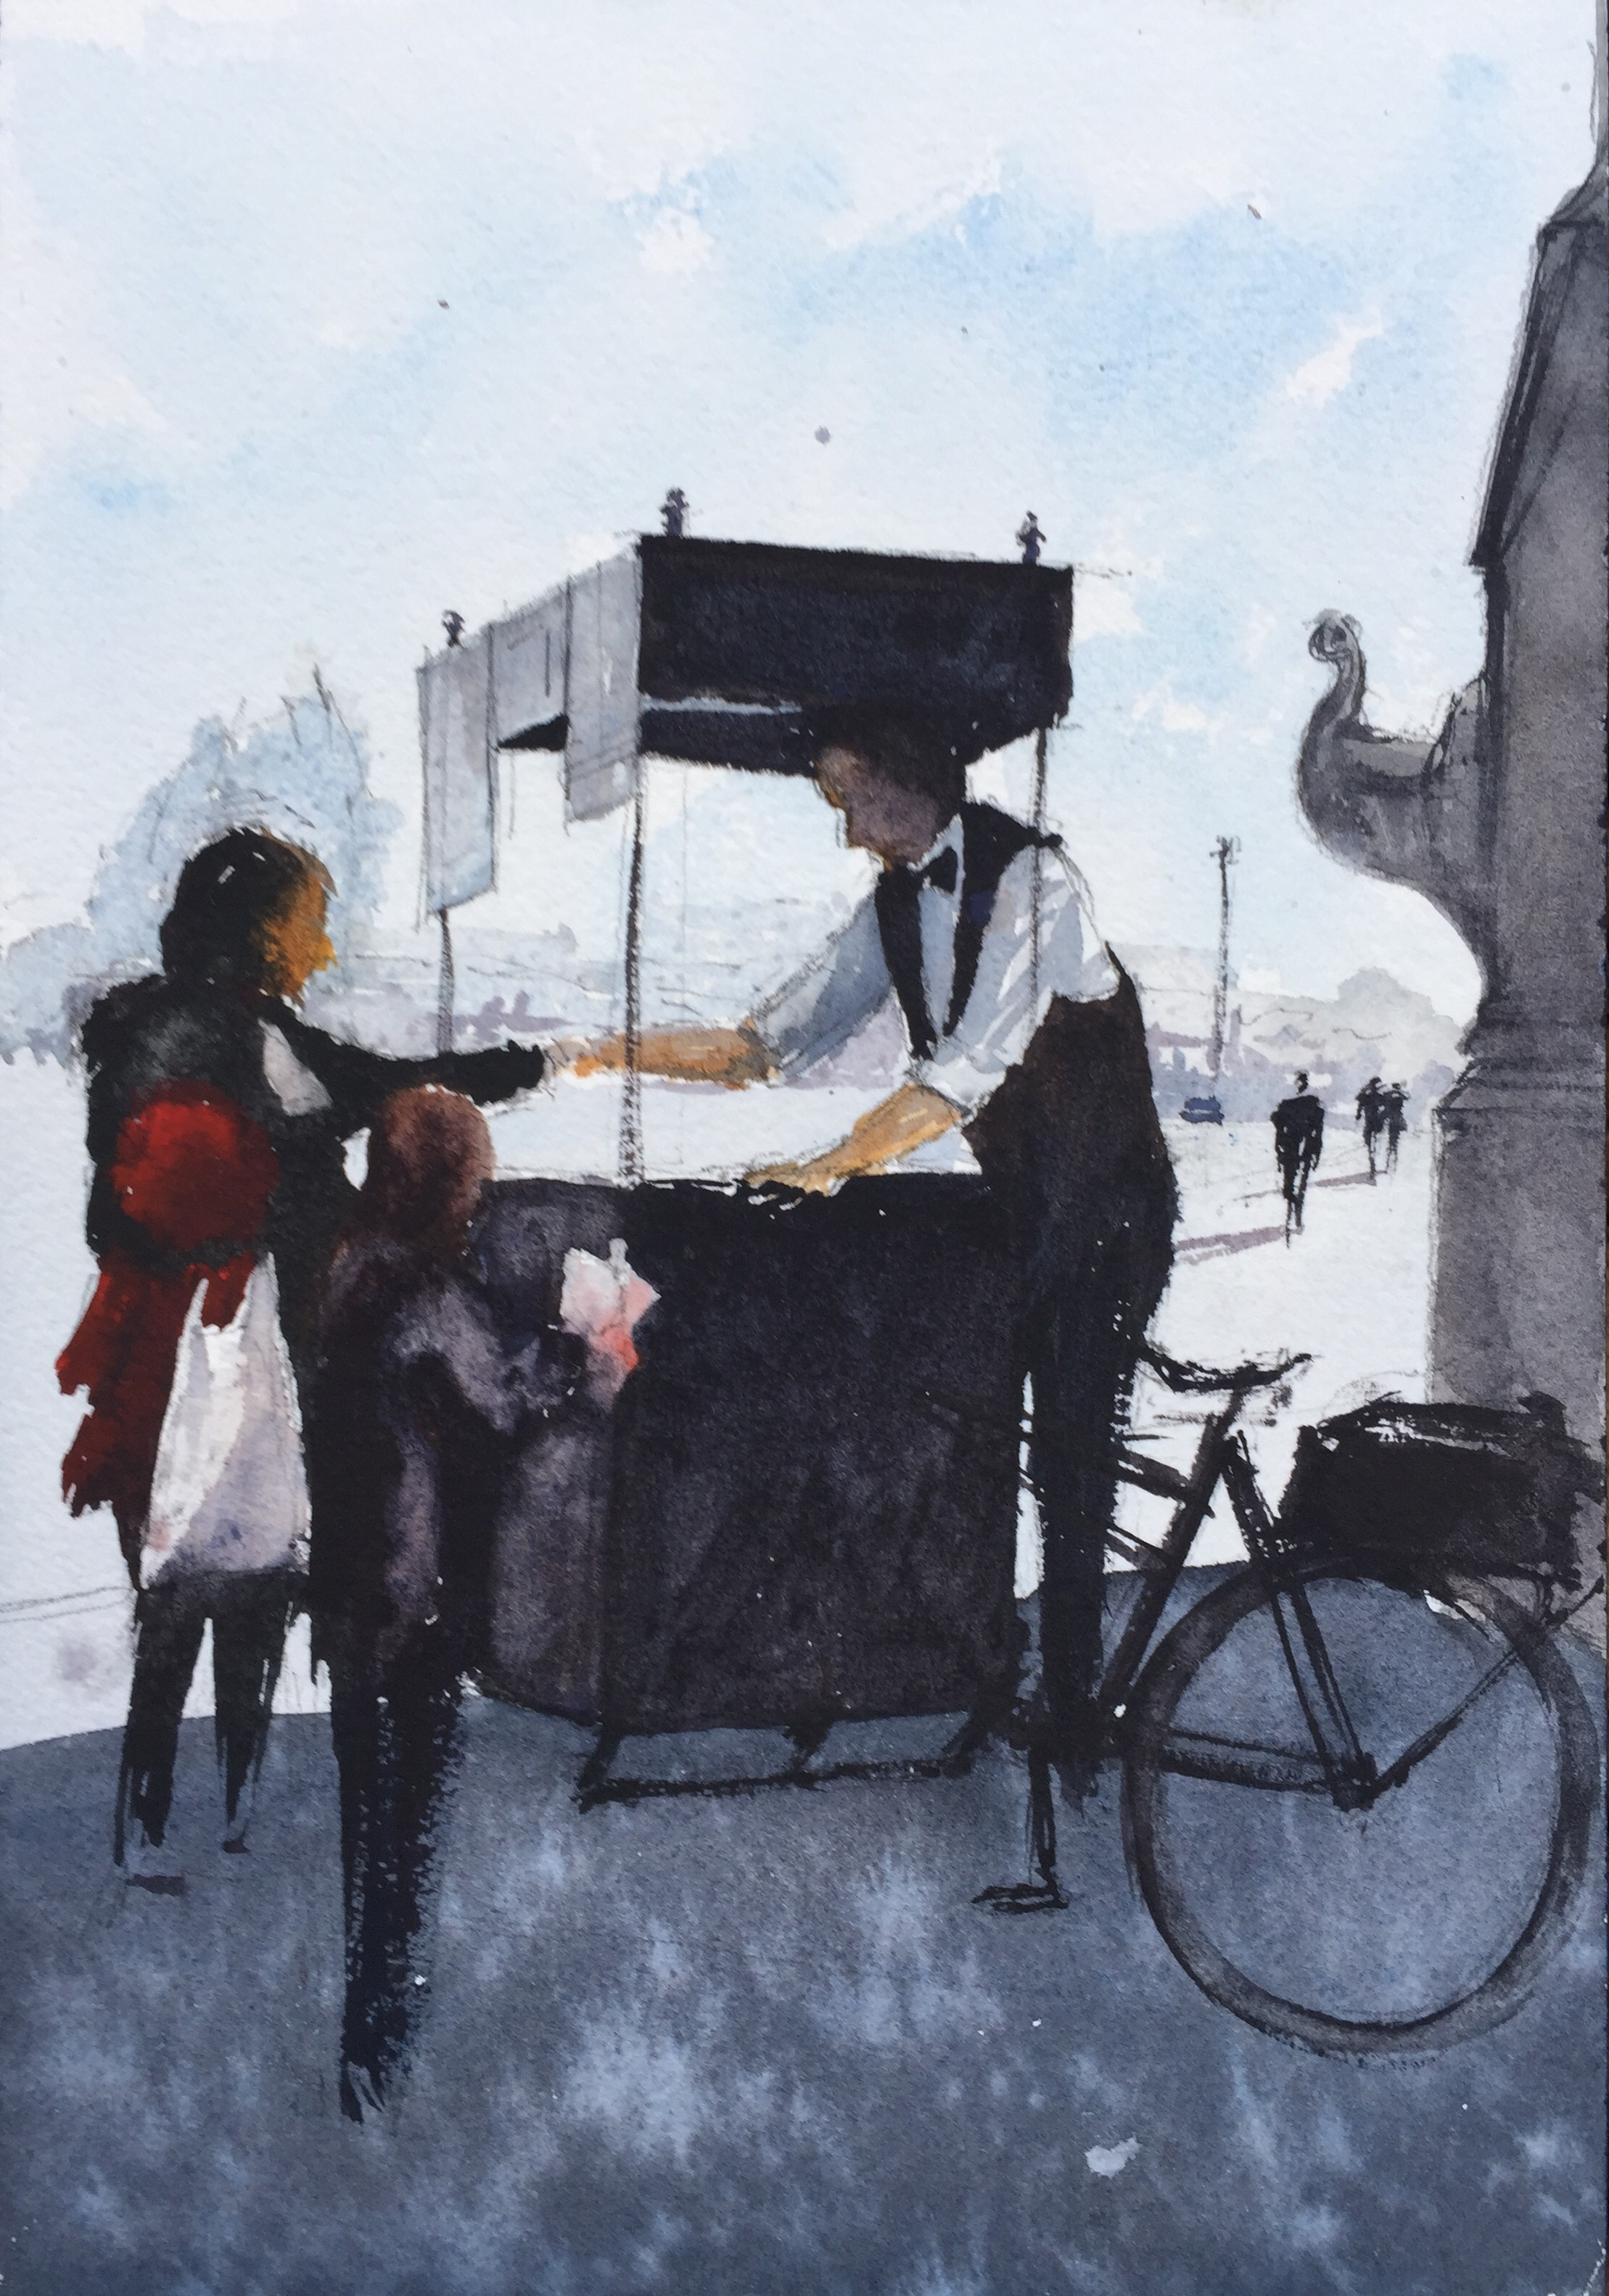 Sketch: The crepe seller - Pont Alexander III